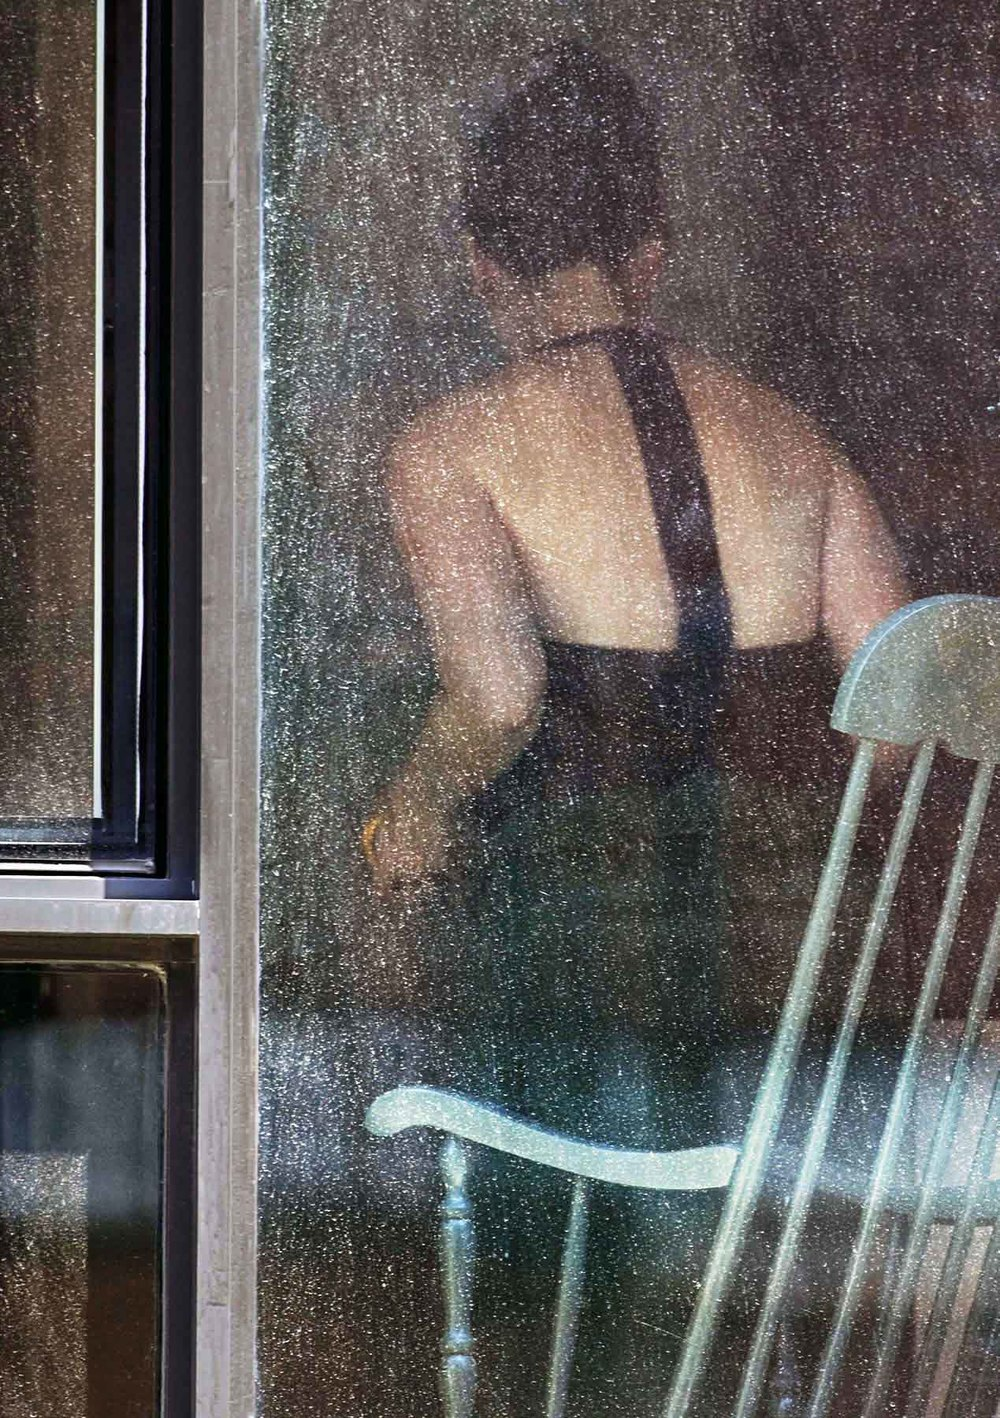 Arne Svenson, The Neighbors #57, 2012, pigment print, 45 x 30 inches